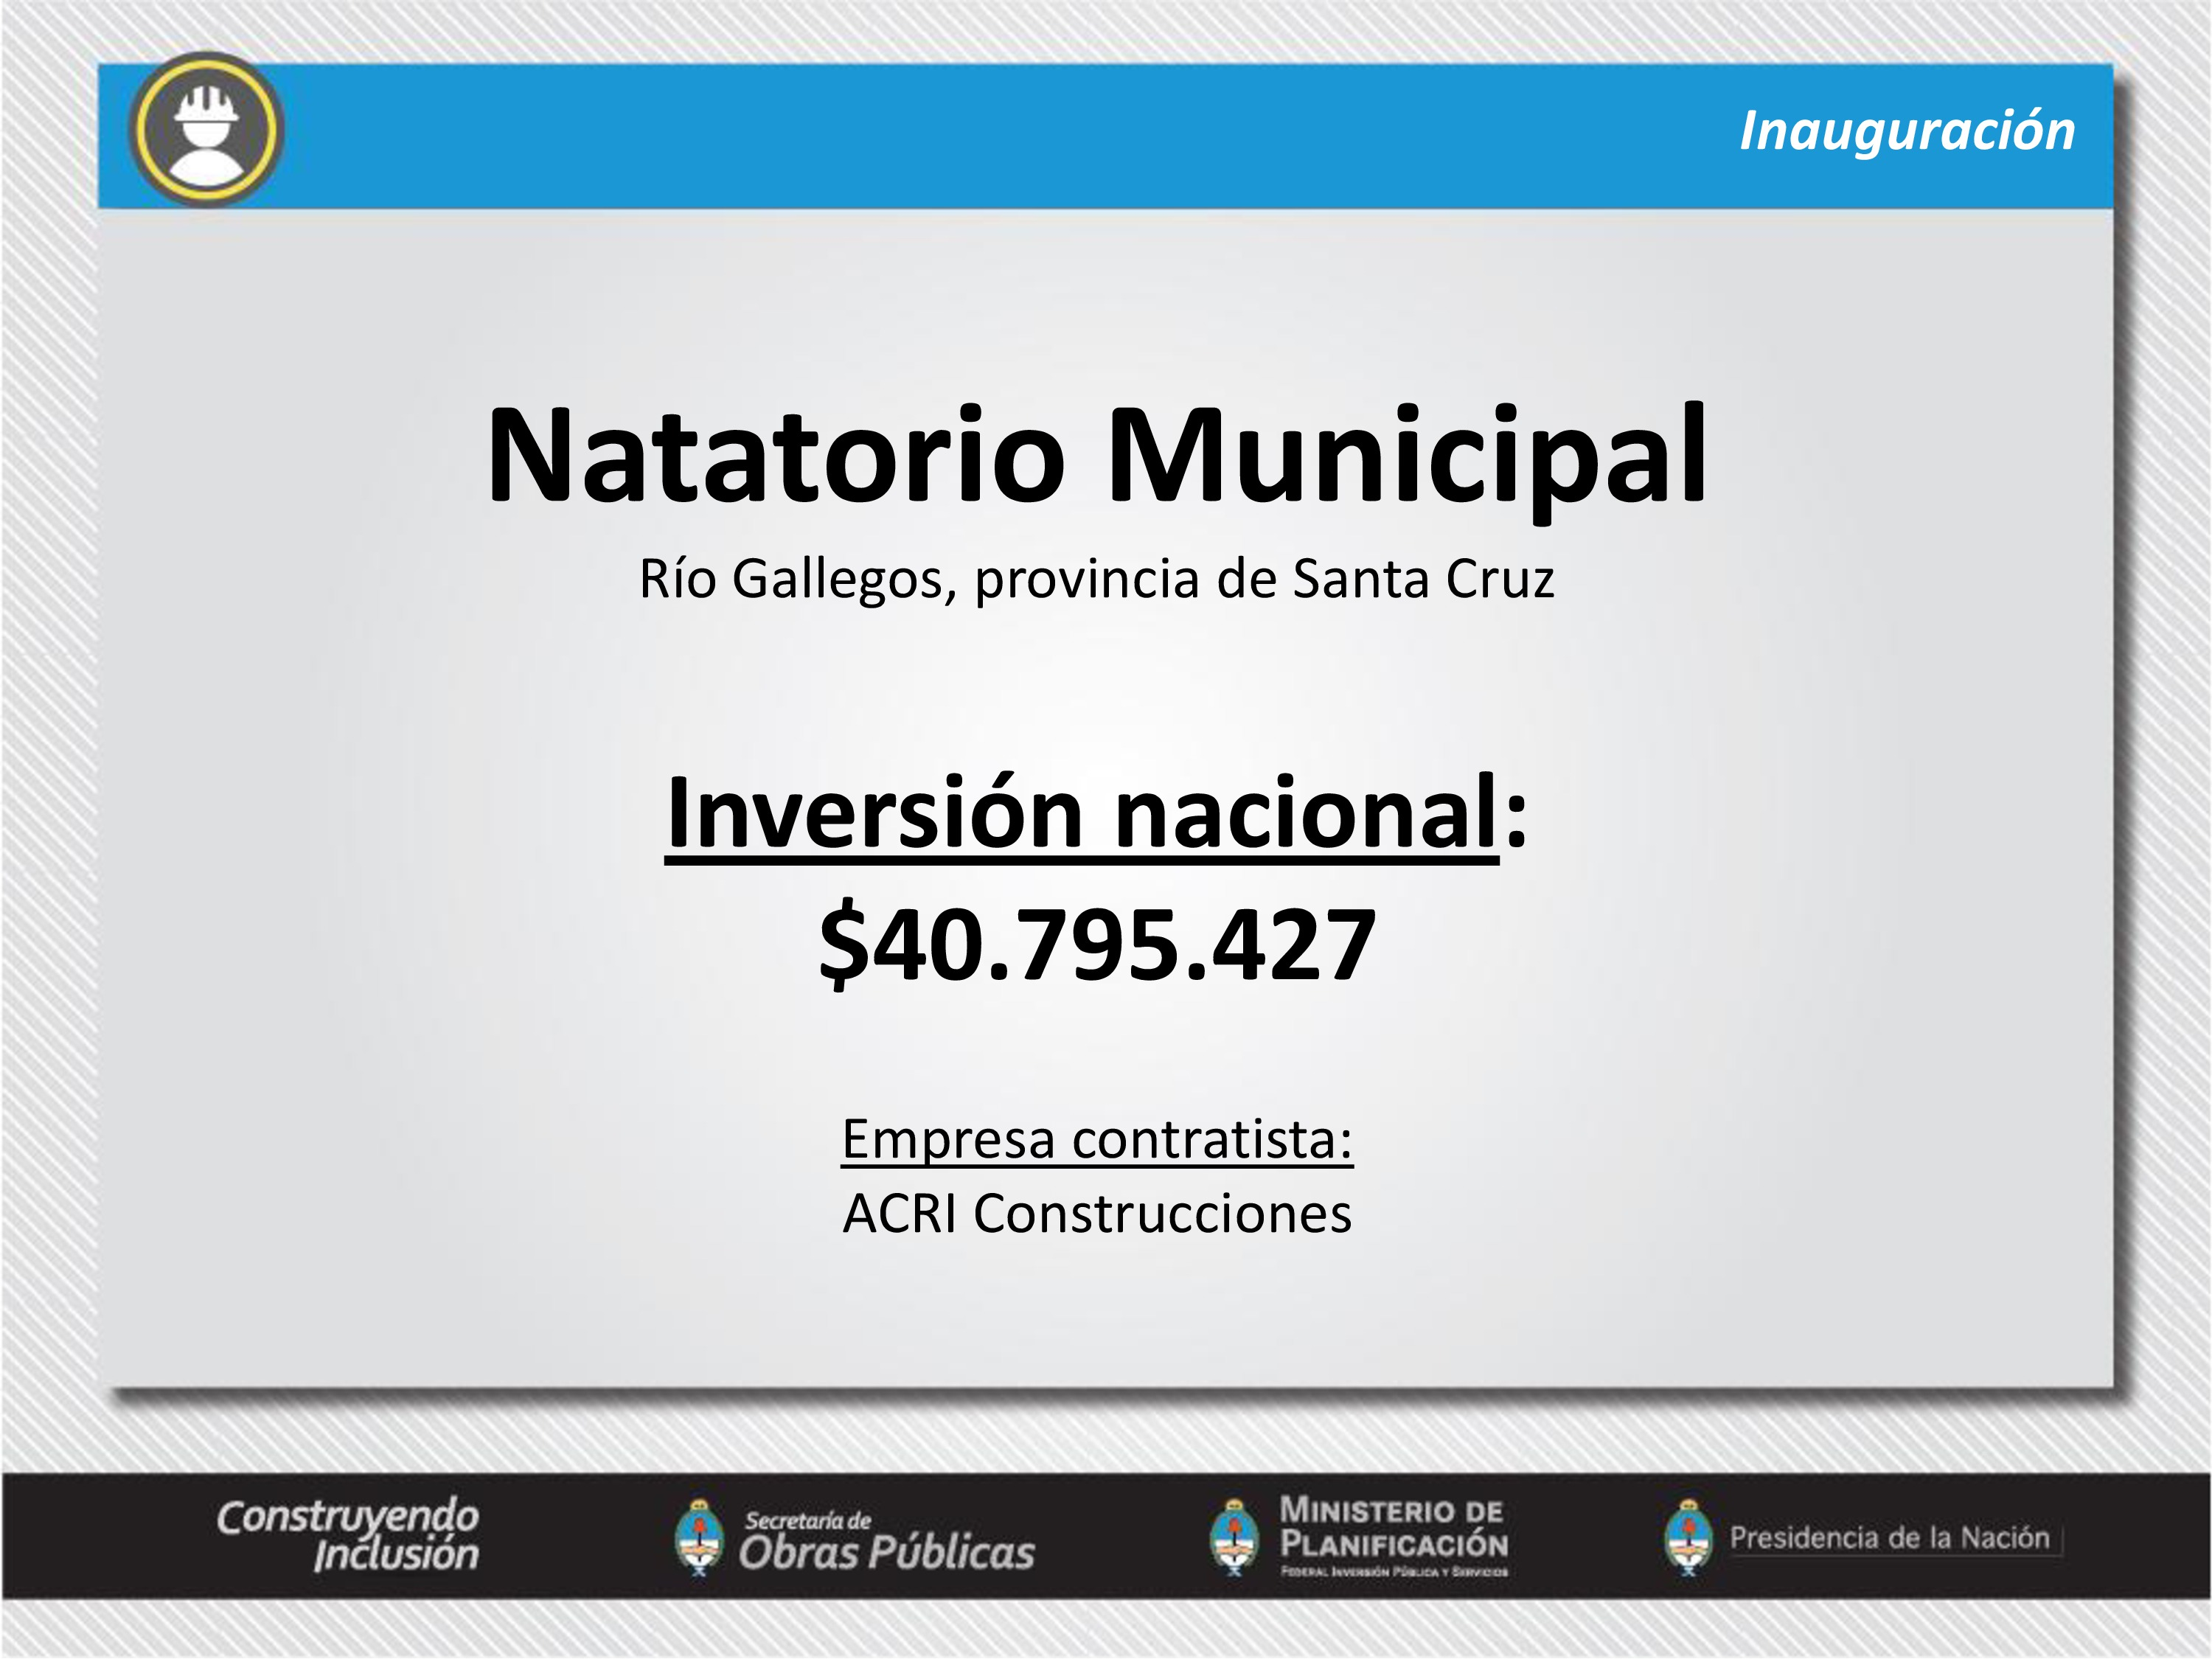 Natatorio Municipal en Río Gallegos, Santa Cruz.